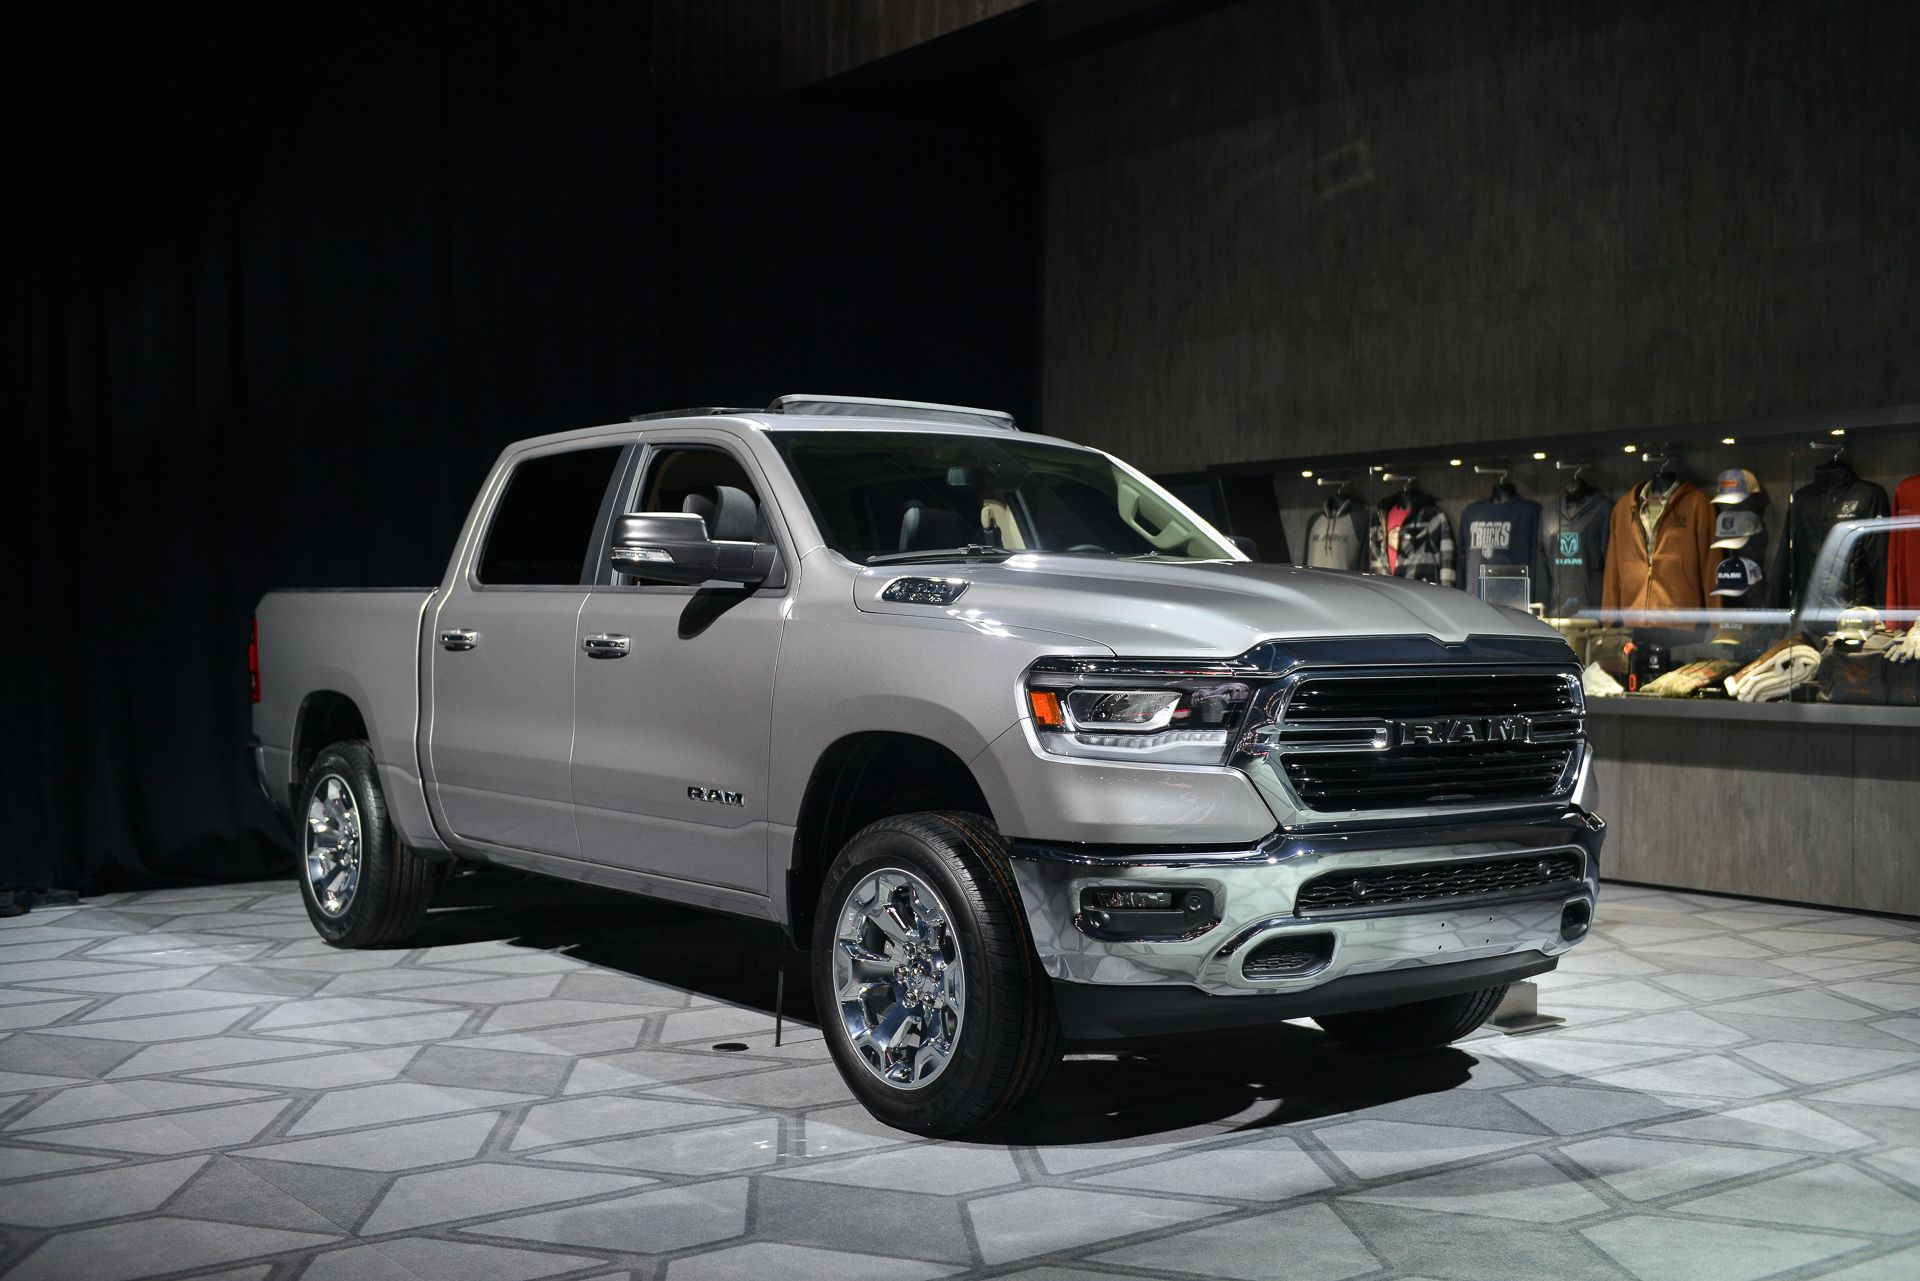 2019 grey Dodge Ram 1500 Laramie - HD Image #12 on ...